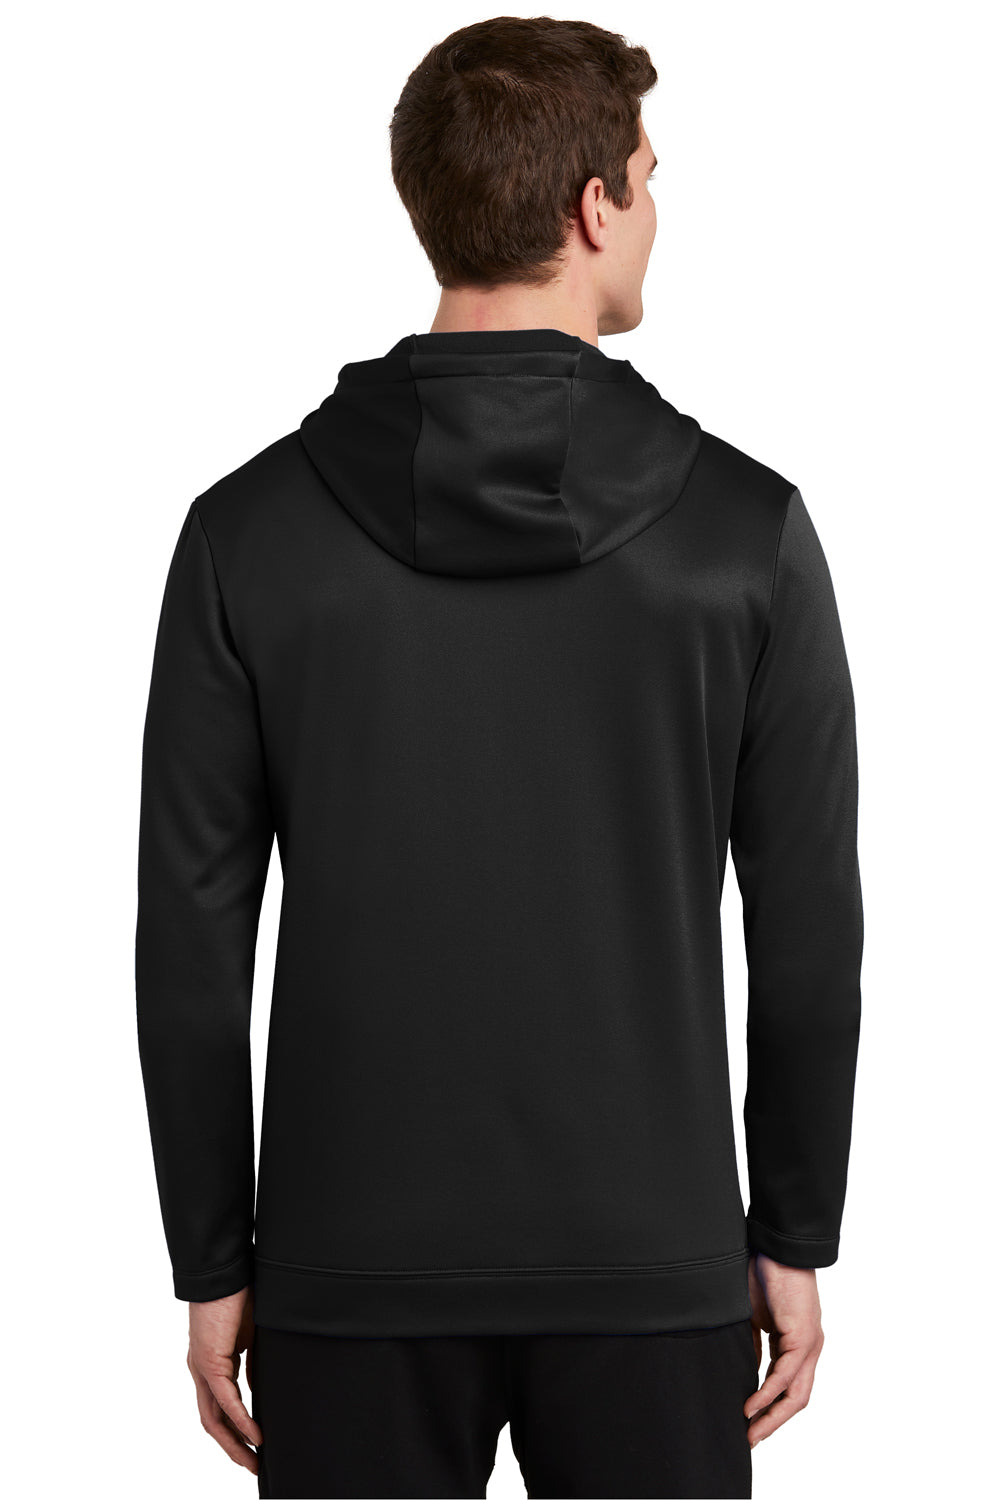 Nike NKAH6259 Mens Therma-Fit Fleece Full Zip Hooded Sweatshirt Hoodie Black Back